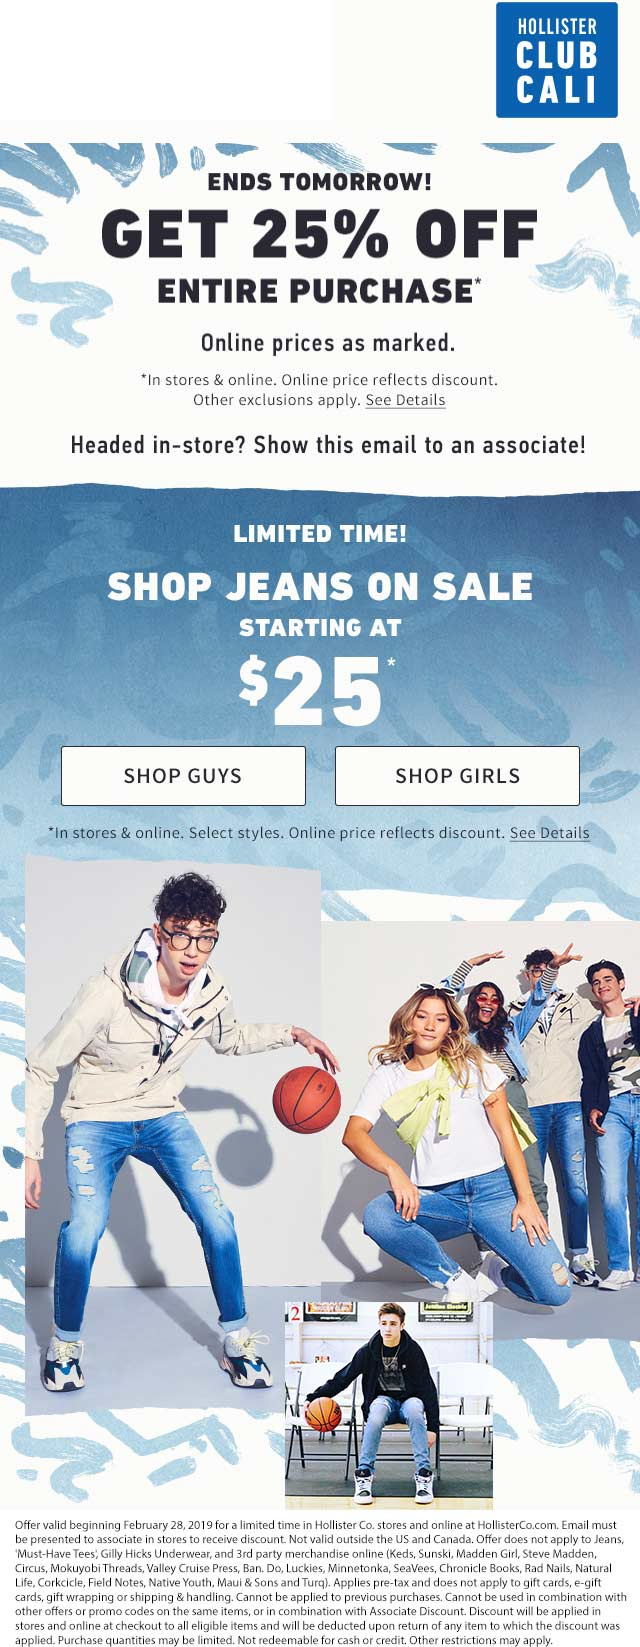 Hollister.com Promo Coupon 25% off at Hollister, ditto online